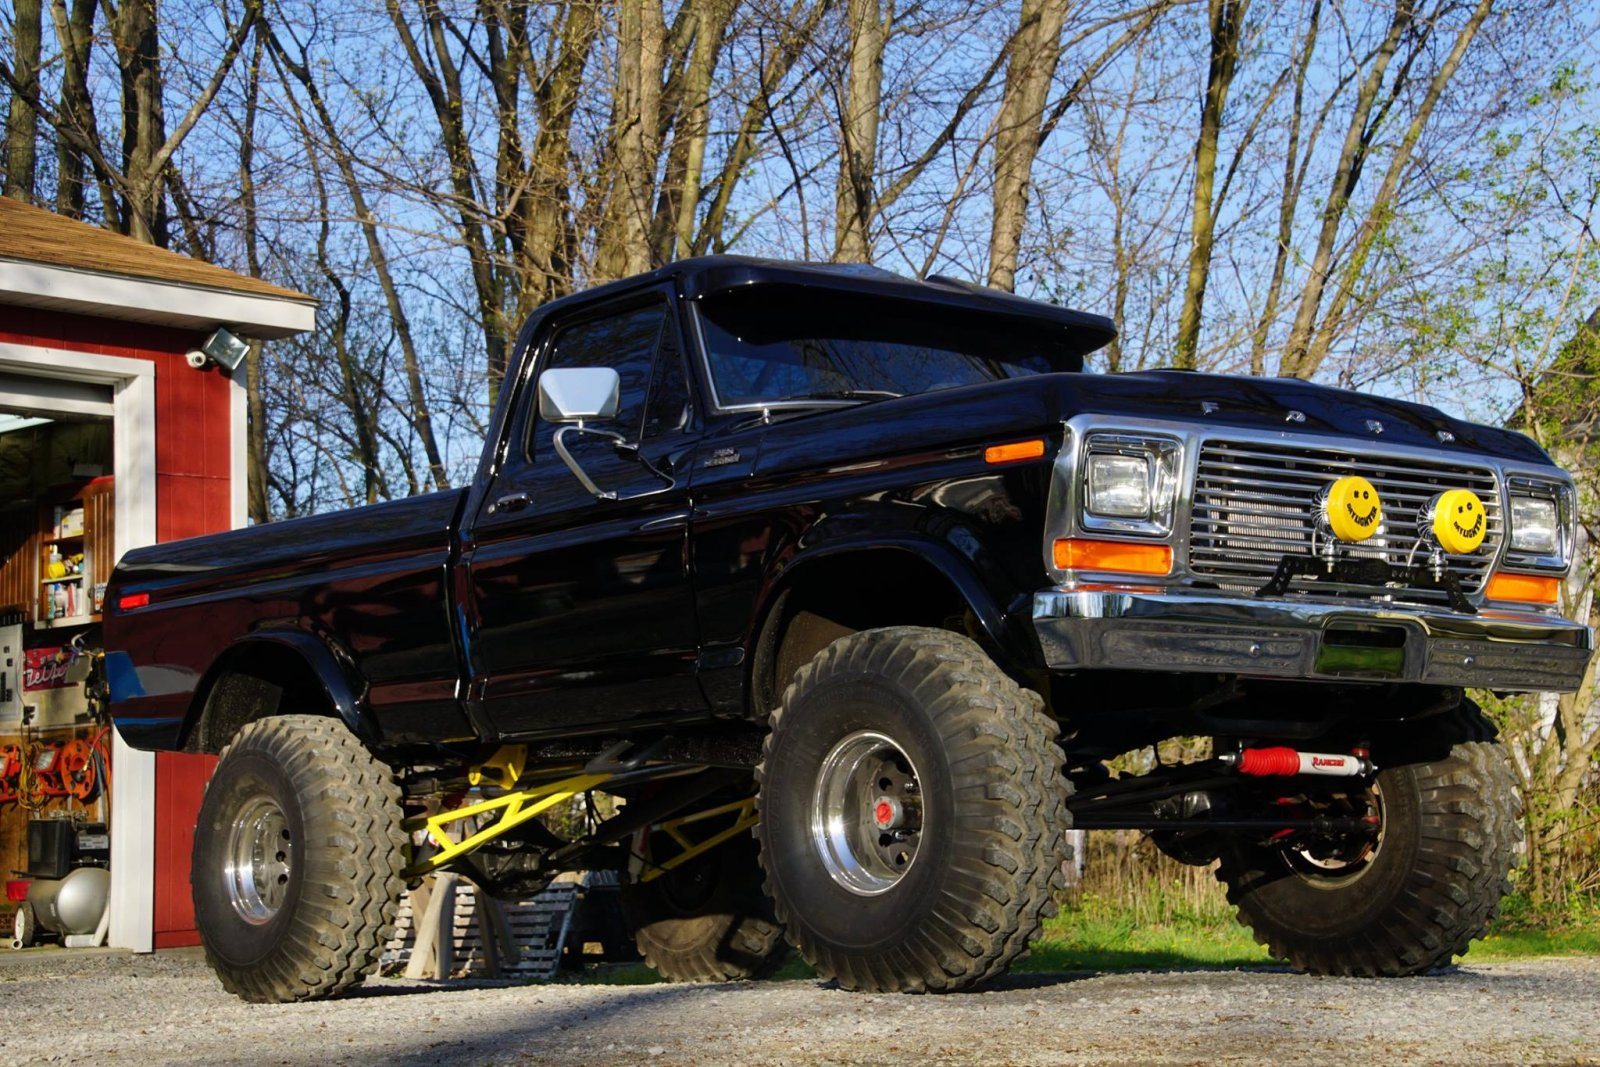 1979 Ford F150 With a 460 Dupont Jet Black Paint 2.jpg